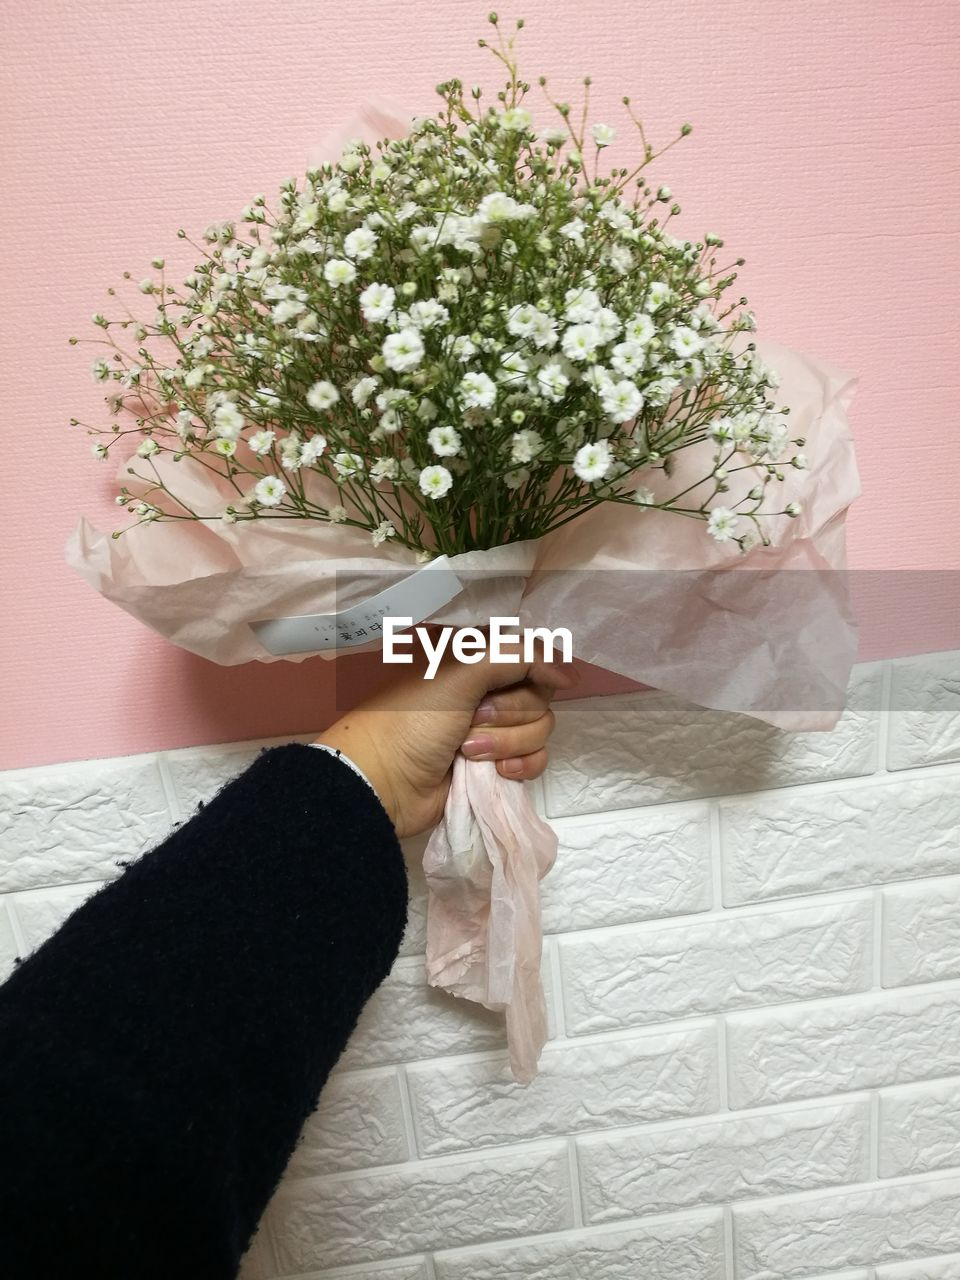 human hand, flower, wedding, bride, holding, celebration, human body part, life events, wedding dress, bouquet, one person, real people, indoors, wedding ceremony, women, lifestyles, close-up, low section, day, bridegroom, freshness, people